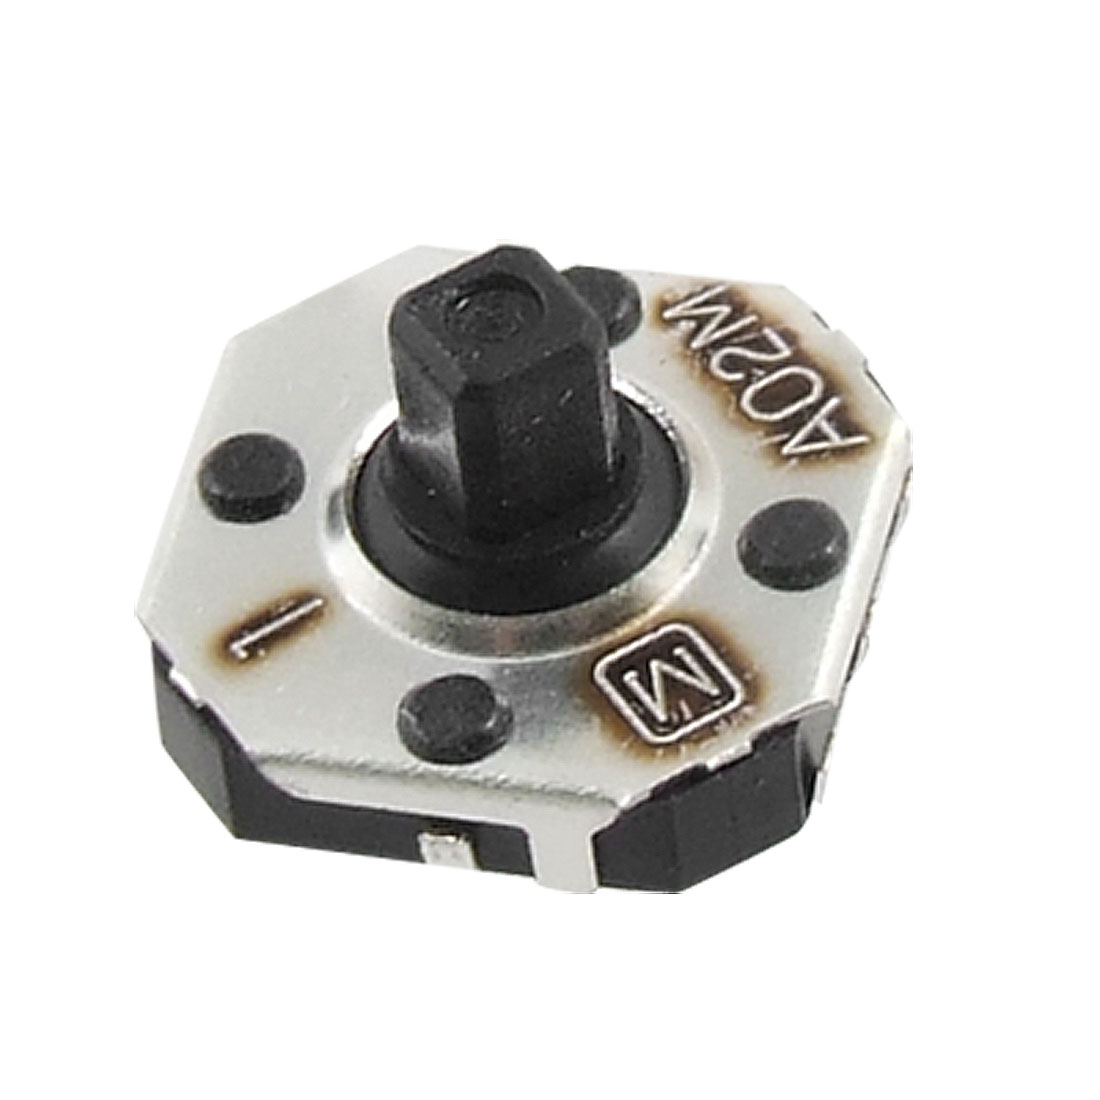 Replacement Parts Joystick Control Button for Nokia N73